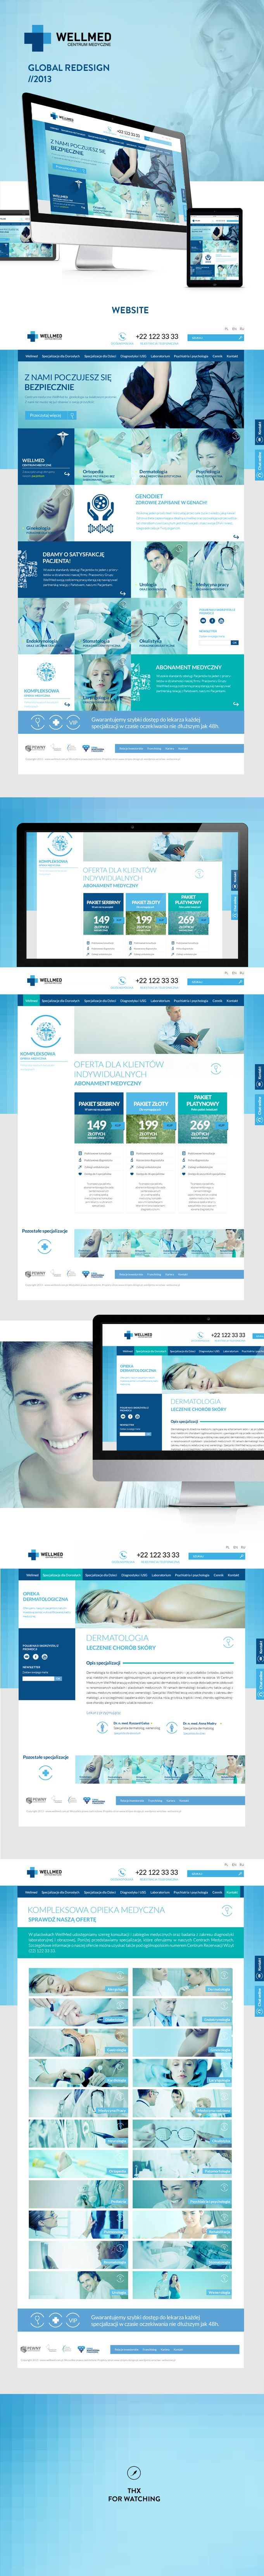 Best-Medical-Website-Design-and-WordPress-Themes